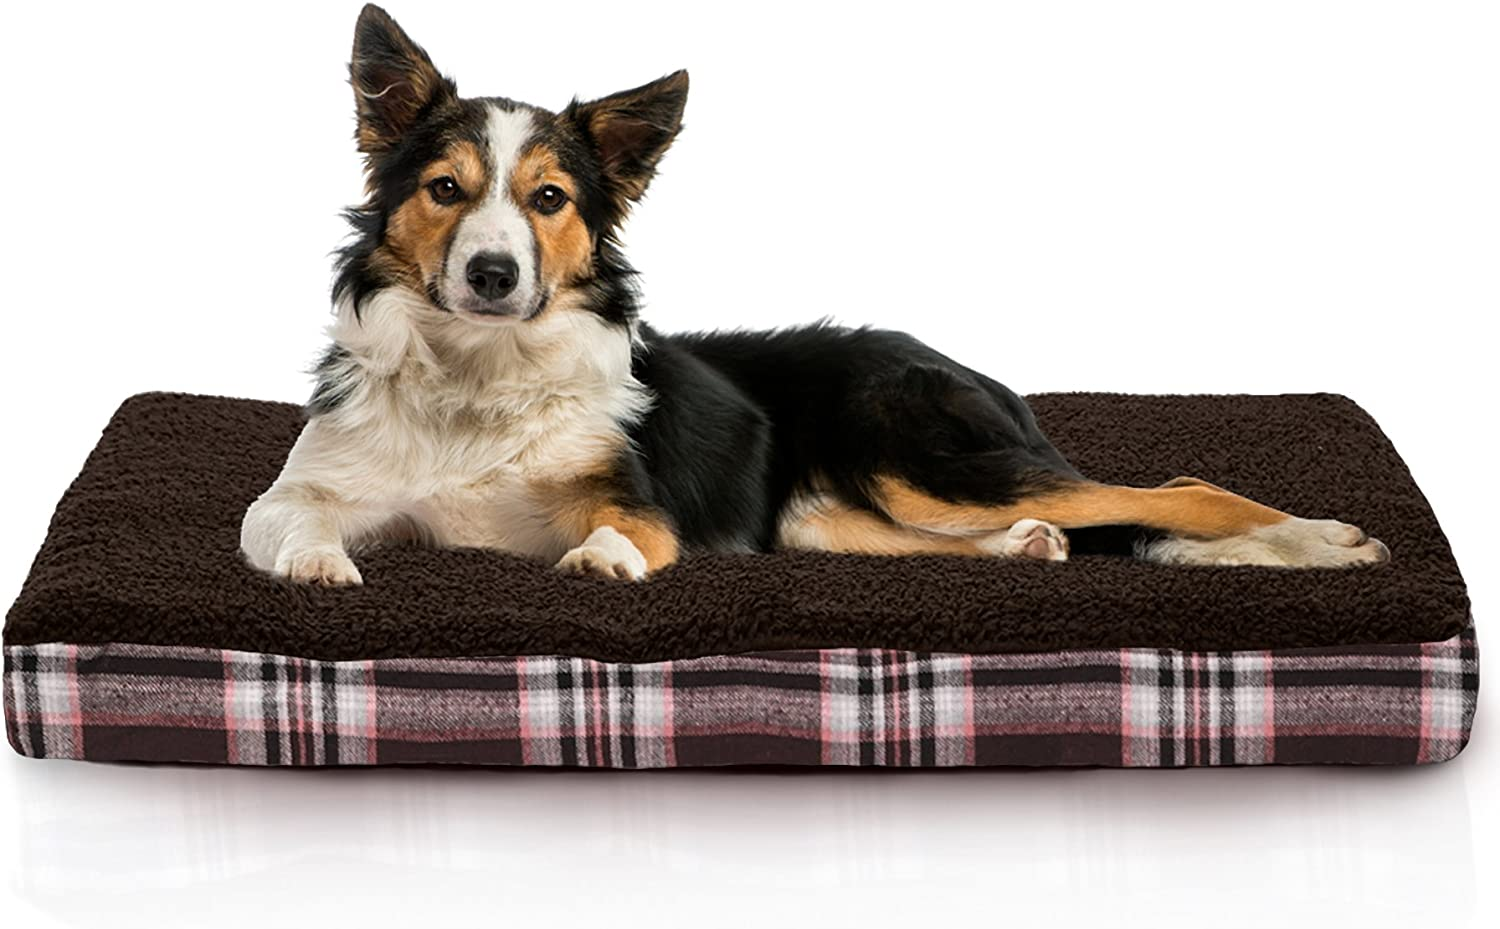 FurHaven Pet Dog Bed   Deluxe Memory Foam Faux Sheepskin & Plaid Mattress Pet Bed for Dogs & Cats, Java Brown, Medium